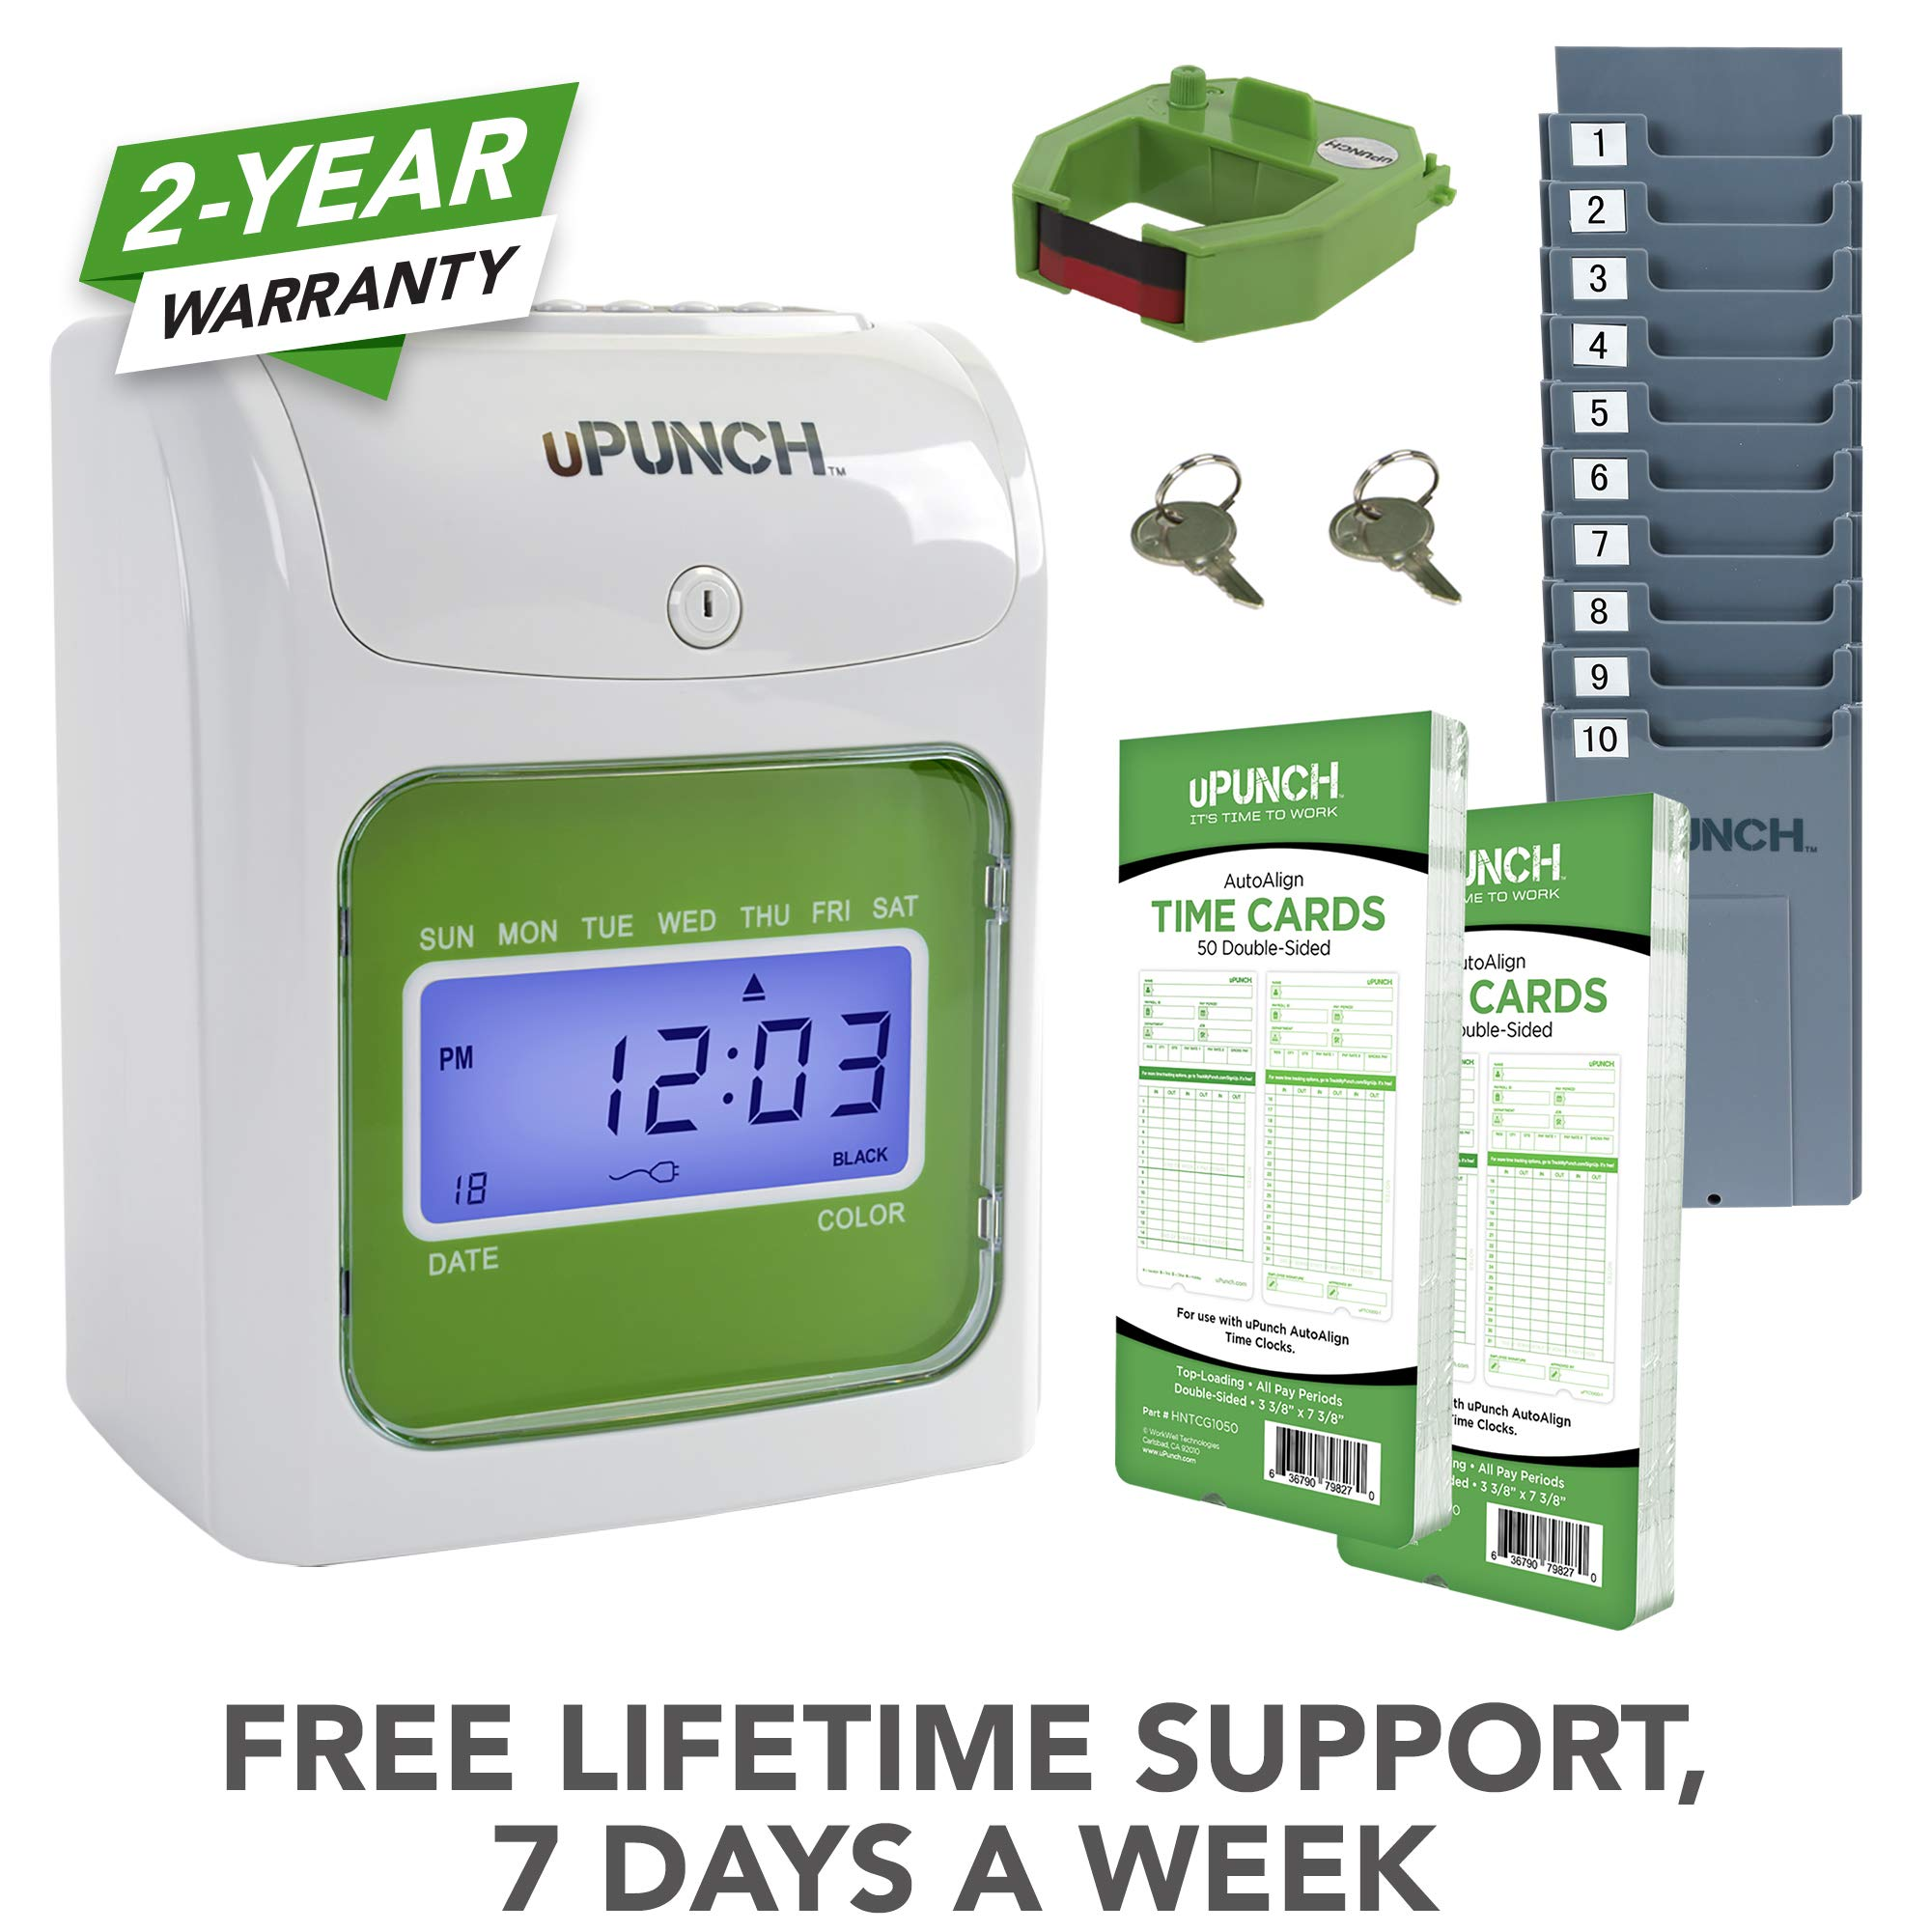 uPunch Starter Time Clock Bundle with 100-Cards, 1 Time Card Rack, 1 Ribbon & 2 Keys (HN1500) by uPunch